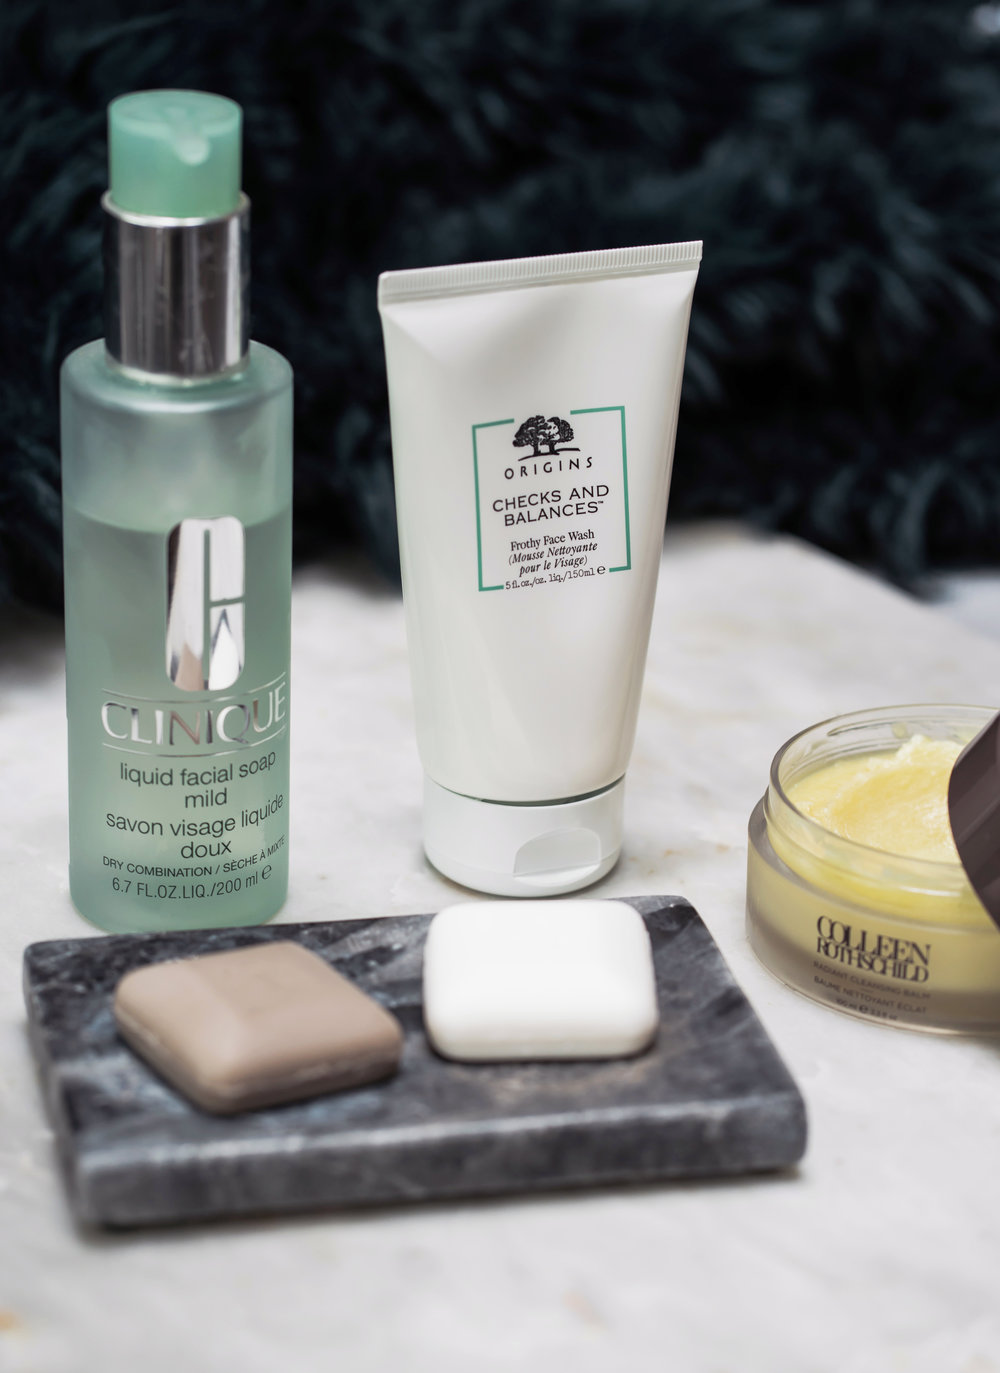 Maggie a la Mode - The Best Face Washes Sephora Ulta Nordstrom Beauty, Clinique Liquid Facial Soap, Colleen Rothschild Radiant Cleansing Balm, Drunk Elephant JuJu Bar, Drunk Elephant Pekee Bar, Origins Checks and Balances Frothy Face Wash